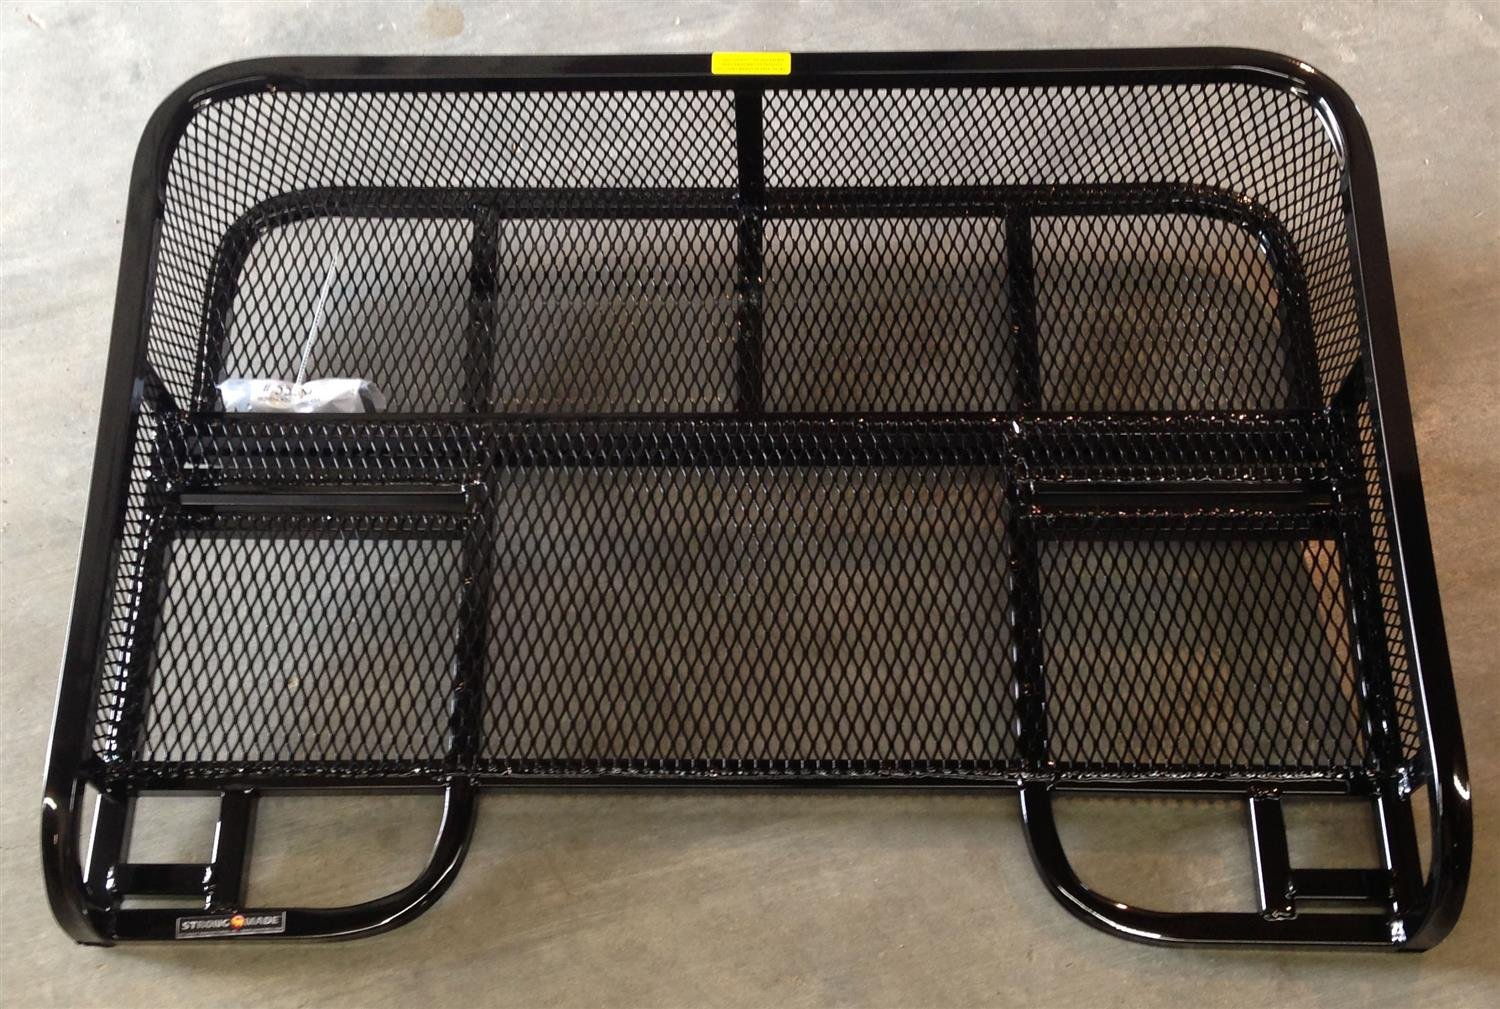 2003-2005 Honda Rincon 650 4X4 Rear Mini Drop Rack by Strong Made 556M by Strong Made